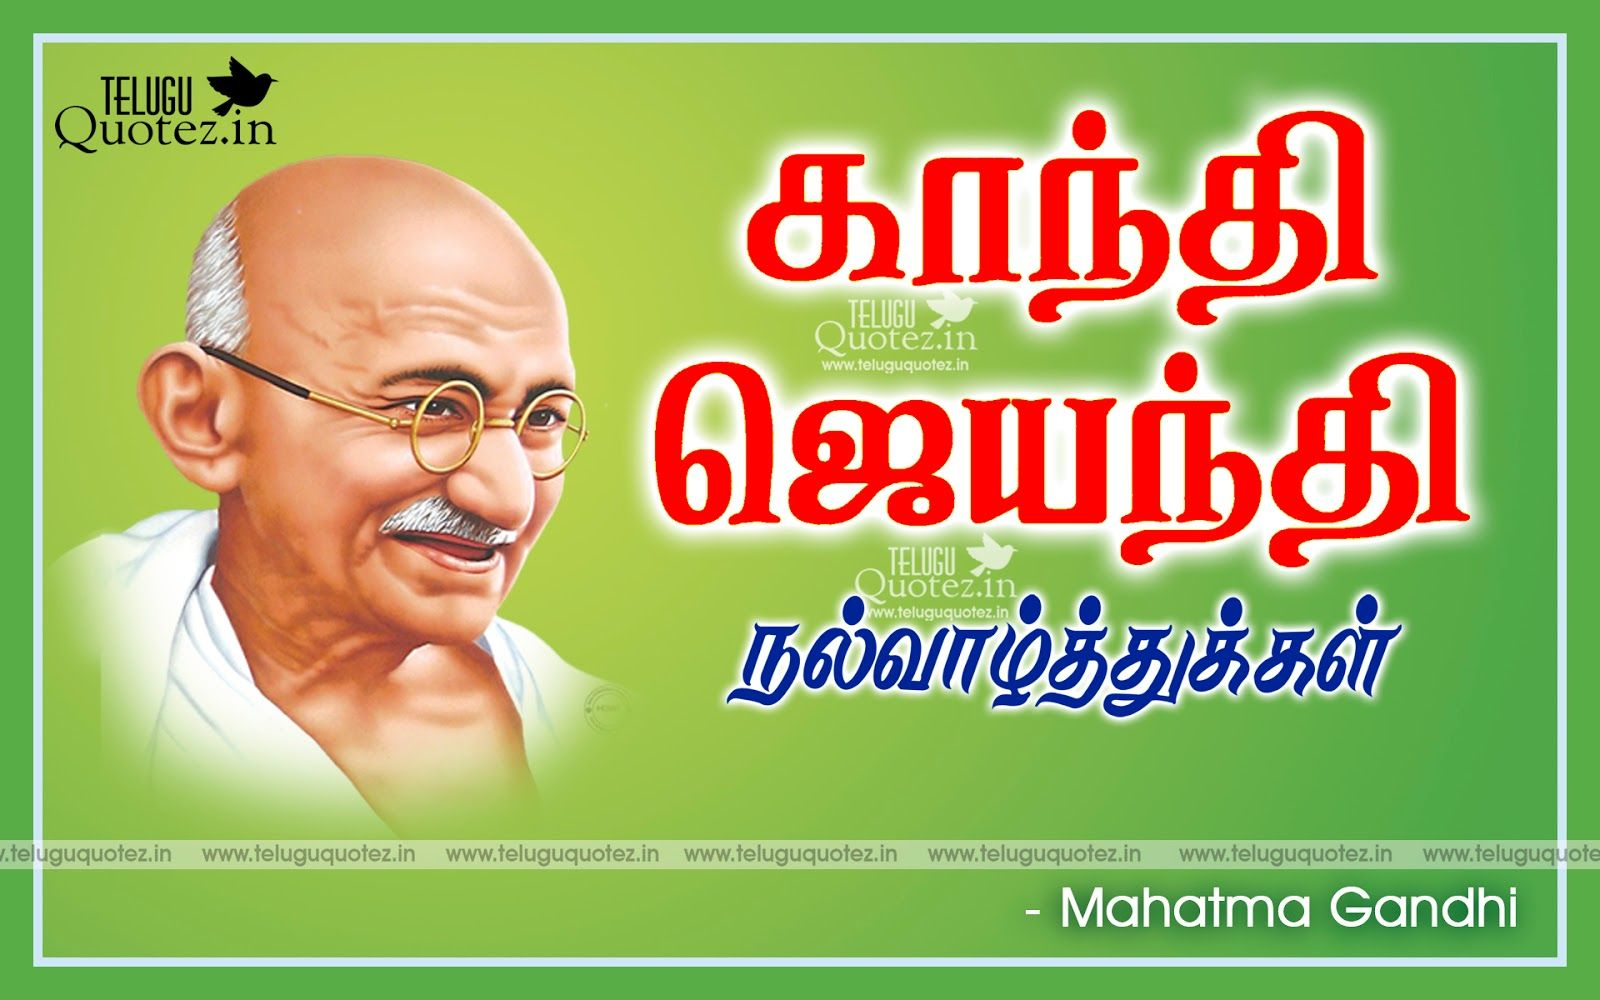 Happy Gandhi Jayanthi Tamil Kavithai Quotes And Wishes In Tamil Font